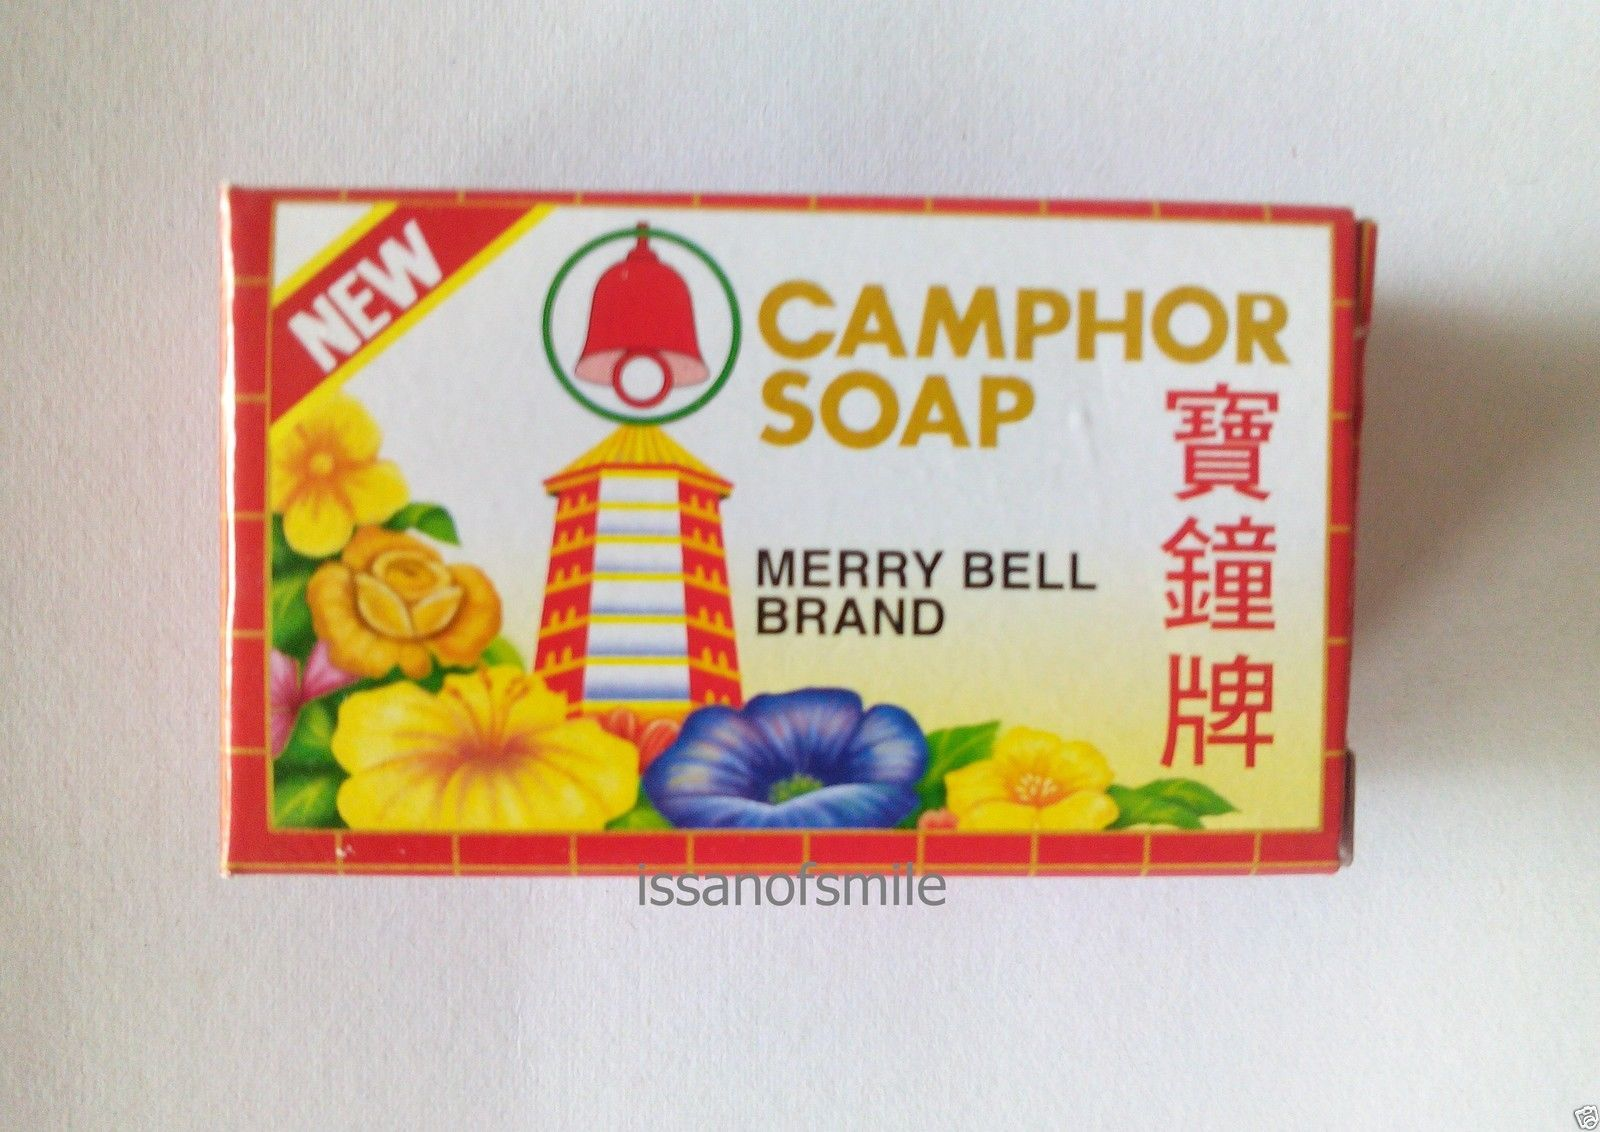 10 x 50g. MERRY BELL CAMPHOR SOAP BAR ANTI-ITCH & ANTISEPTIC